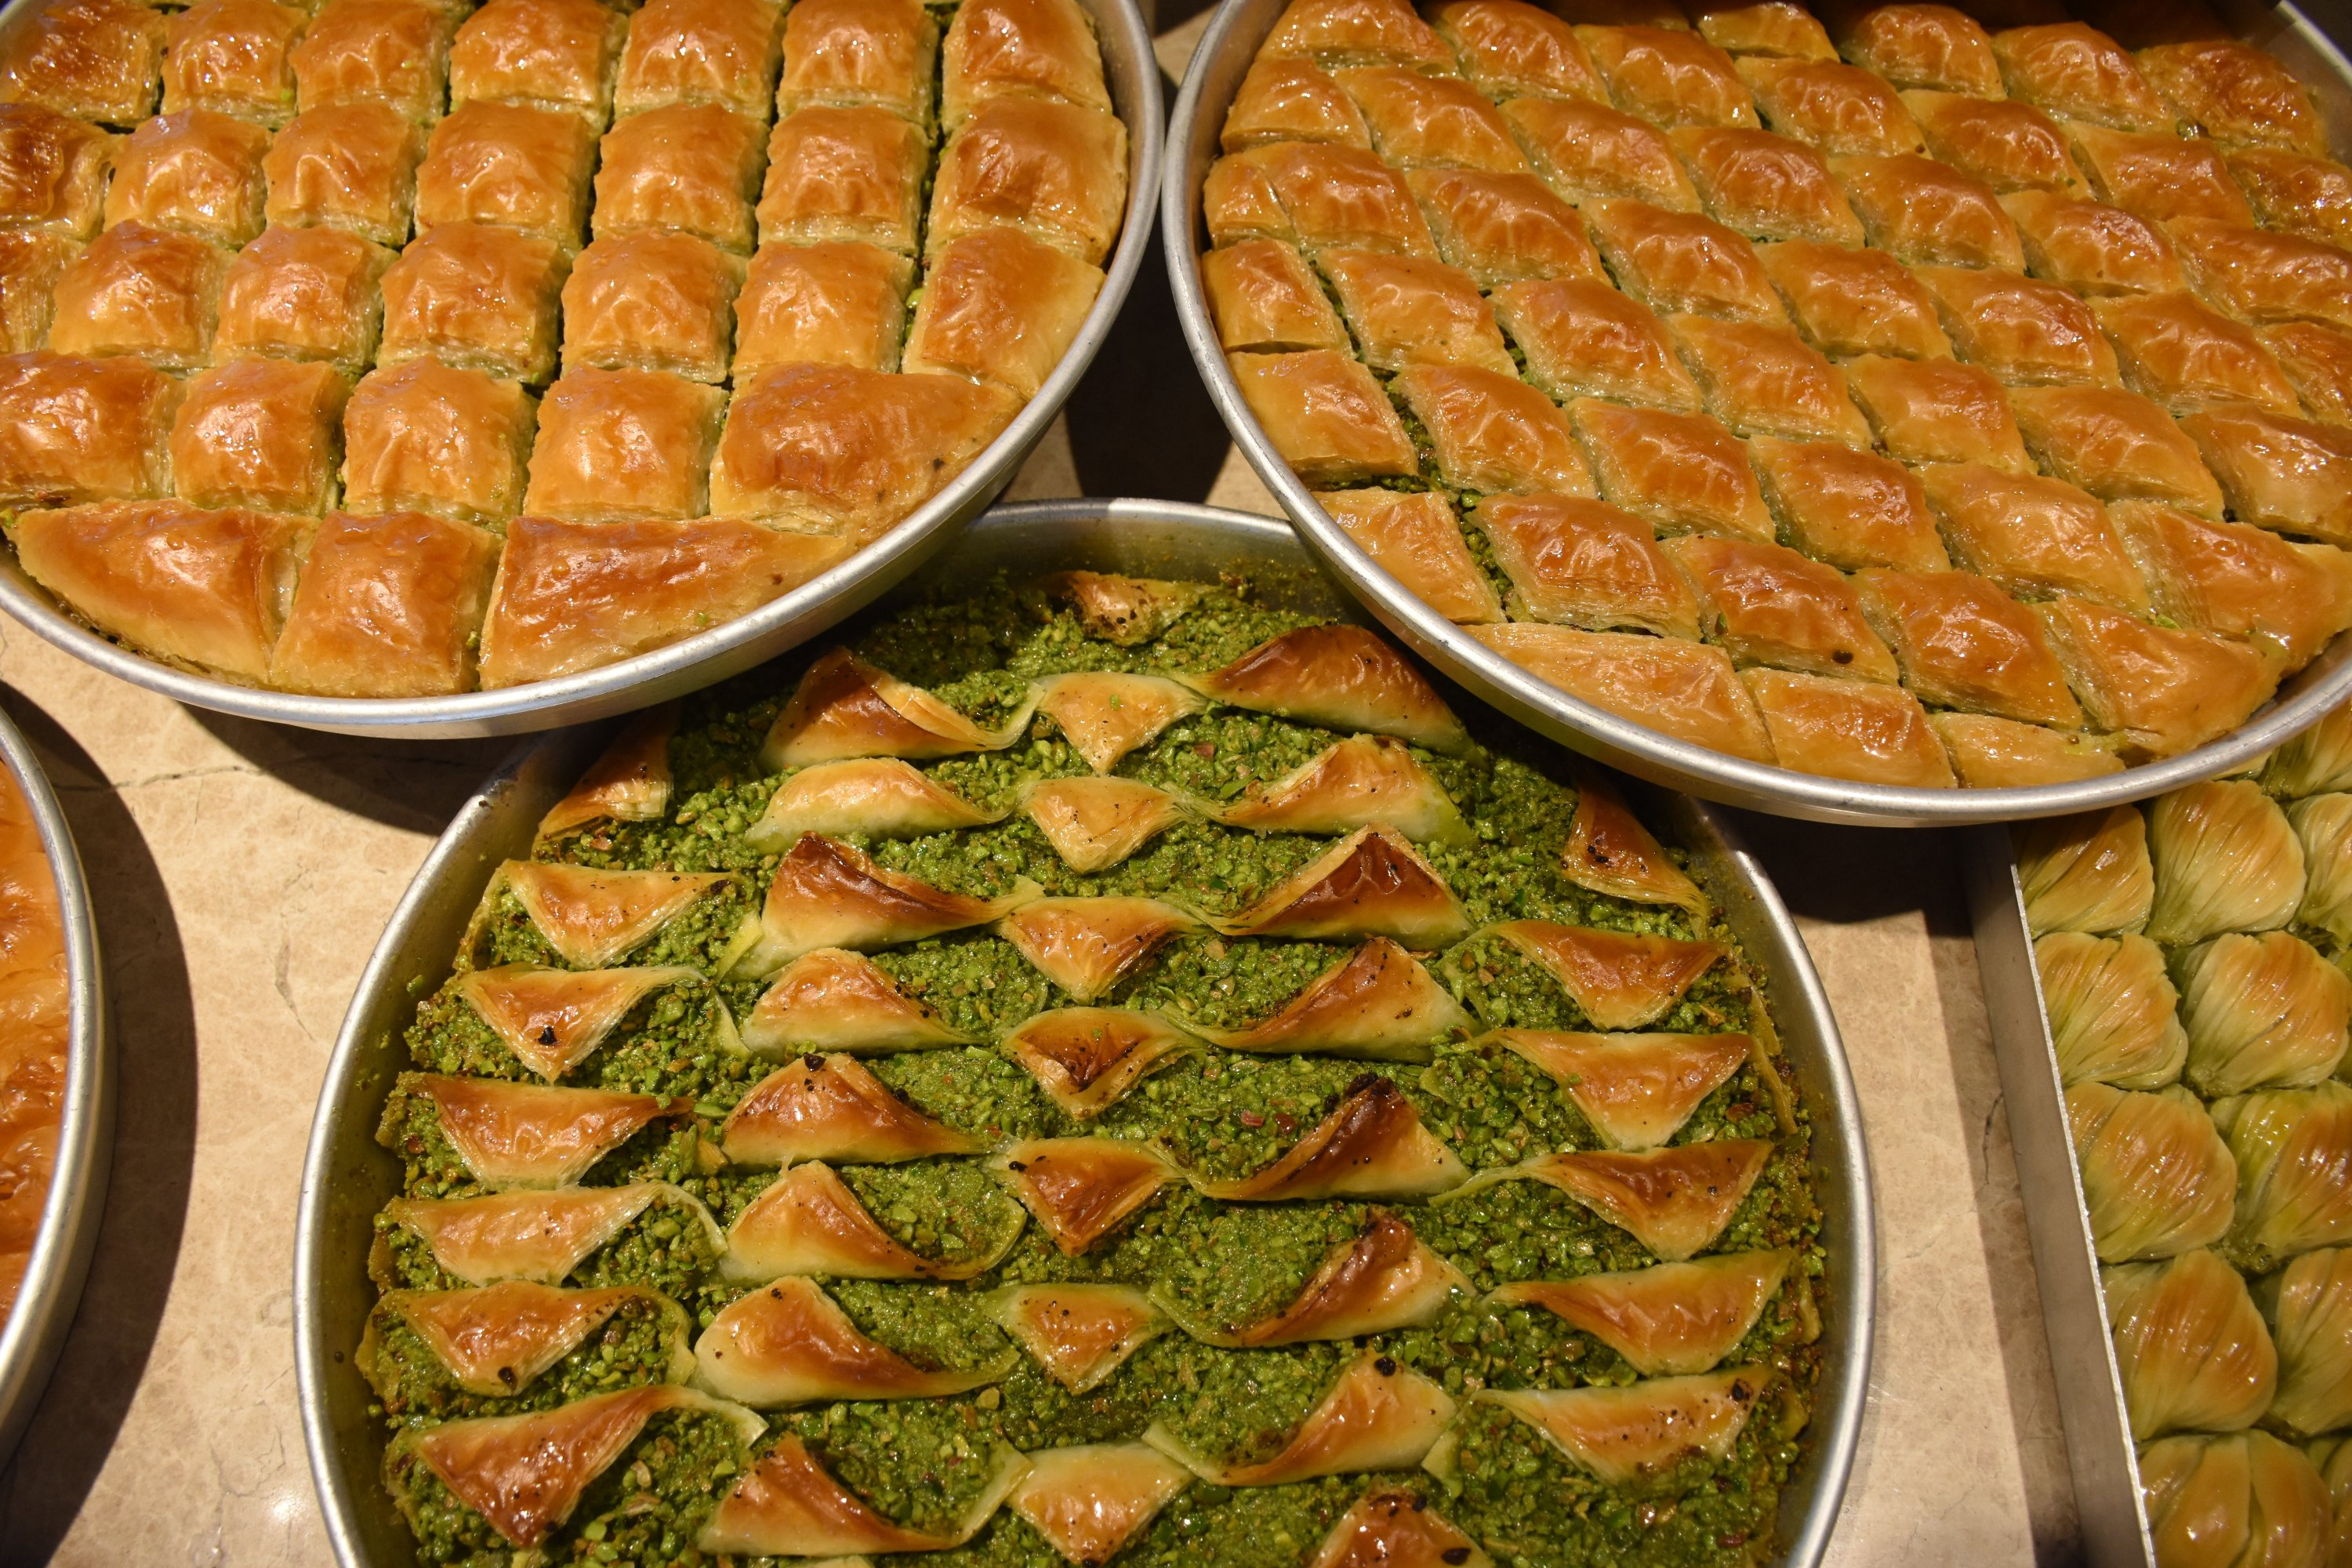 A company employed 80 pastry masters to create new tahini baklava in Gaziantep, southeastern Turkey, Aug. 23, 2020. (AA Photo)